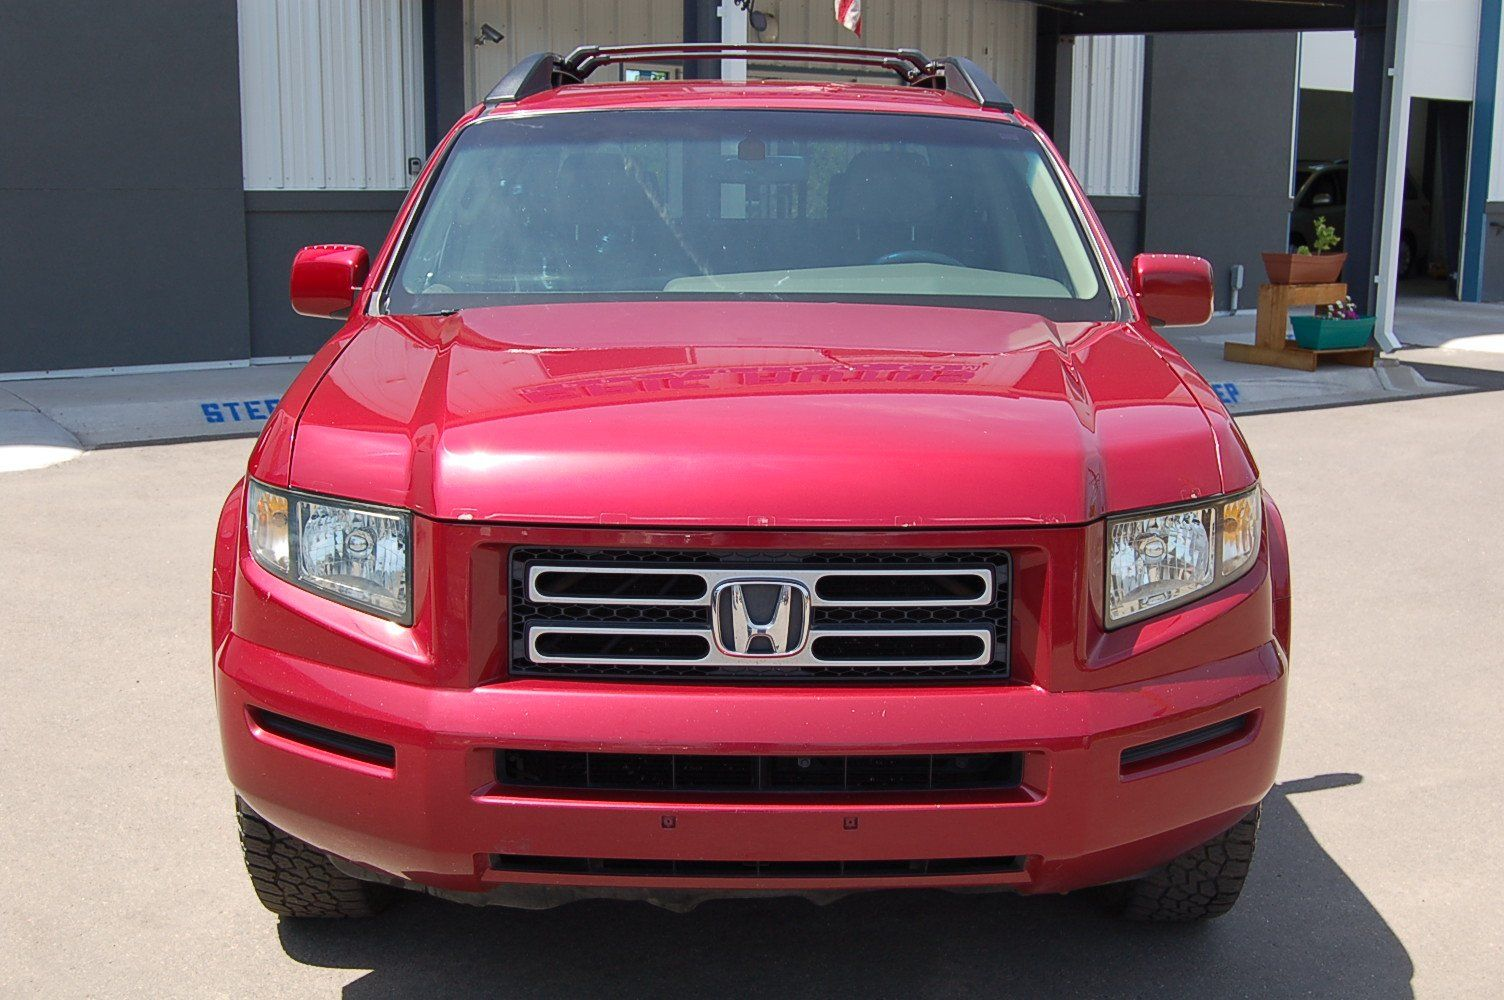 2006 Honda Ridgeline Rtl Pickup Power Brakes Air Conditioning